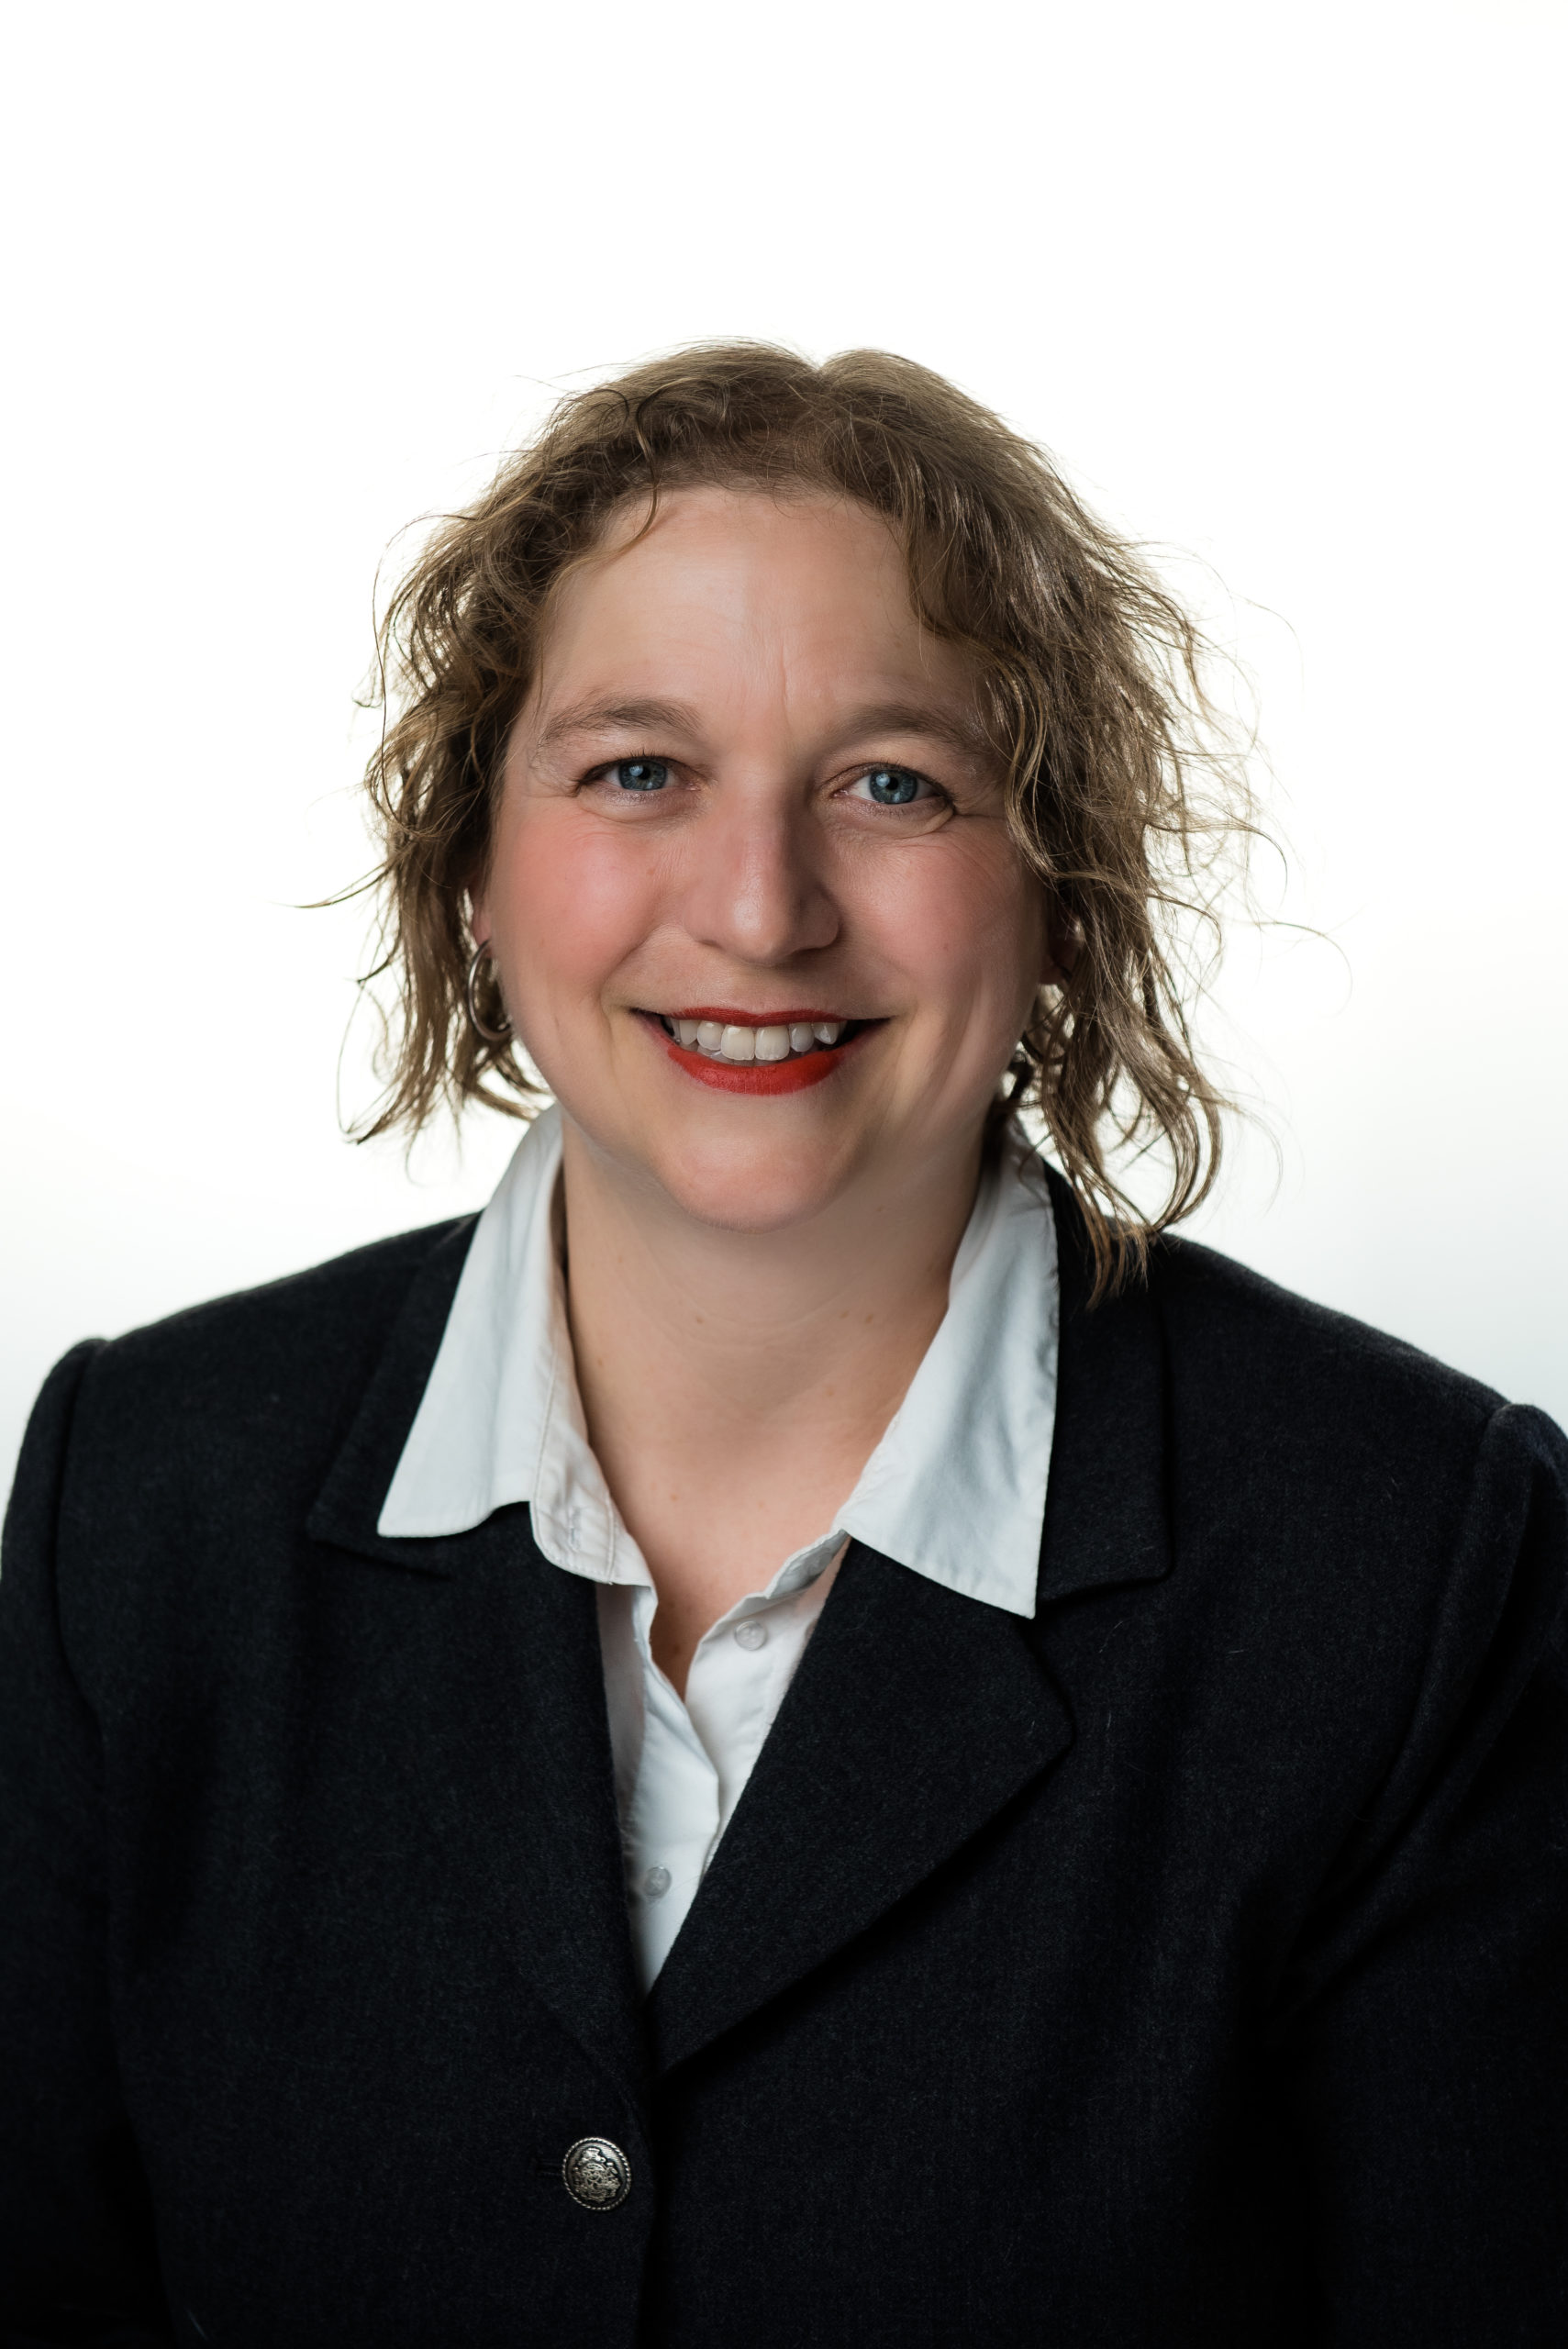 Meredity Maywood, a white woman with wavy light brown hair, sits in front of a white background, wearing a black suit jacket and light blue shirt